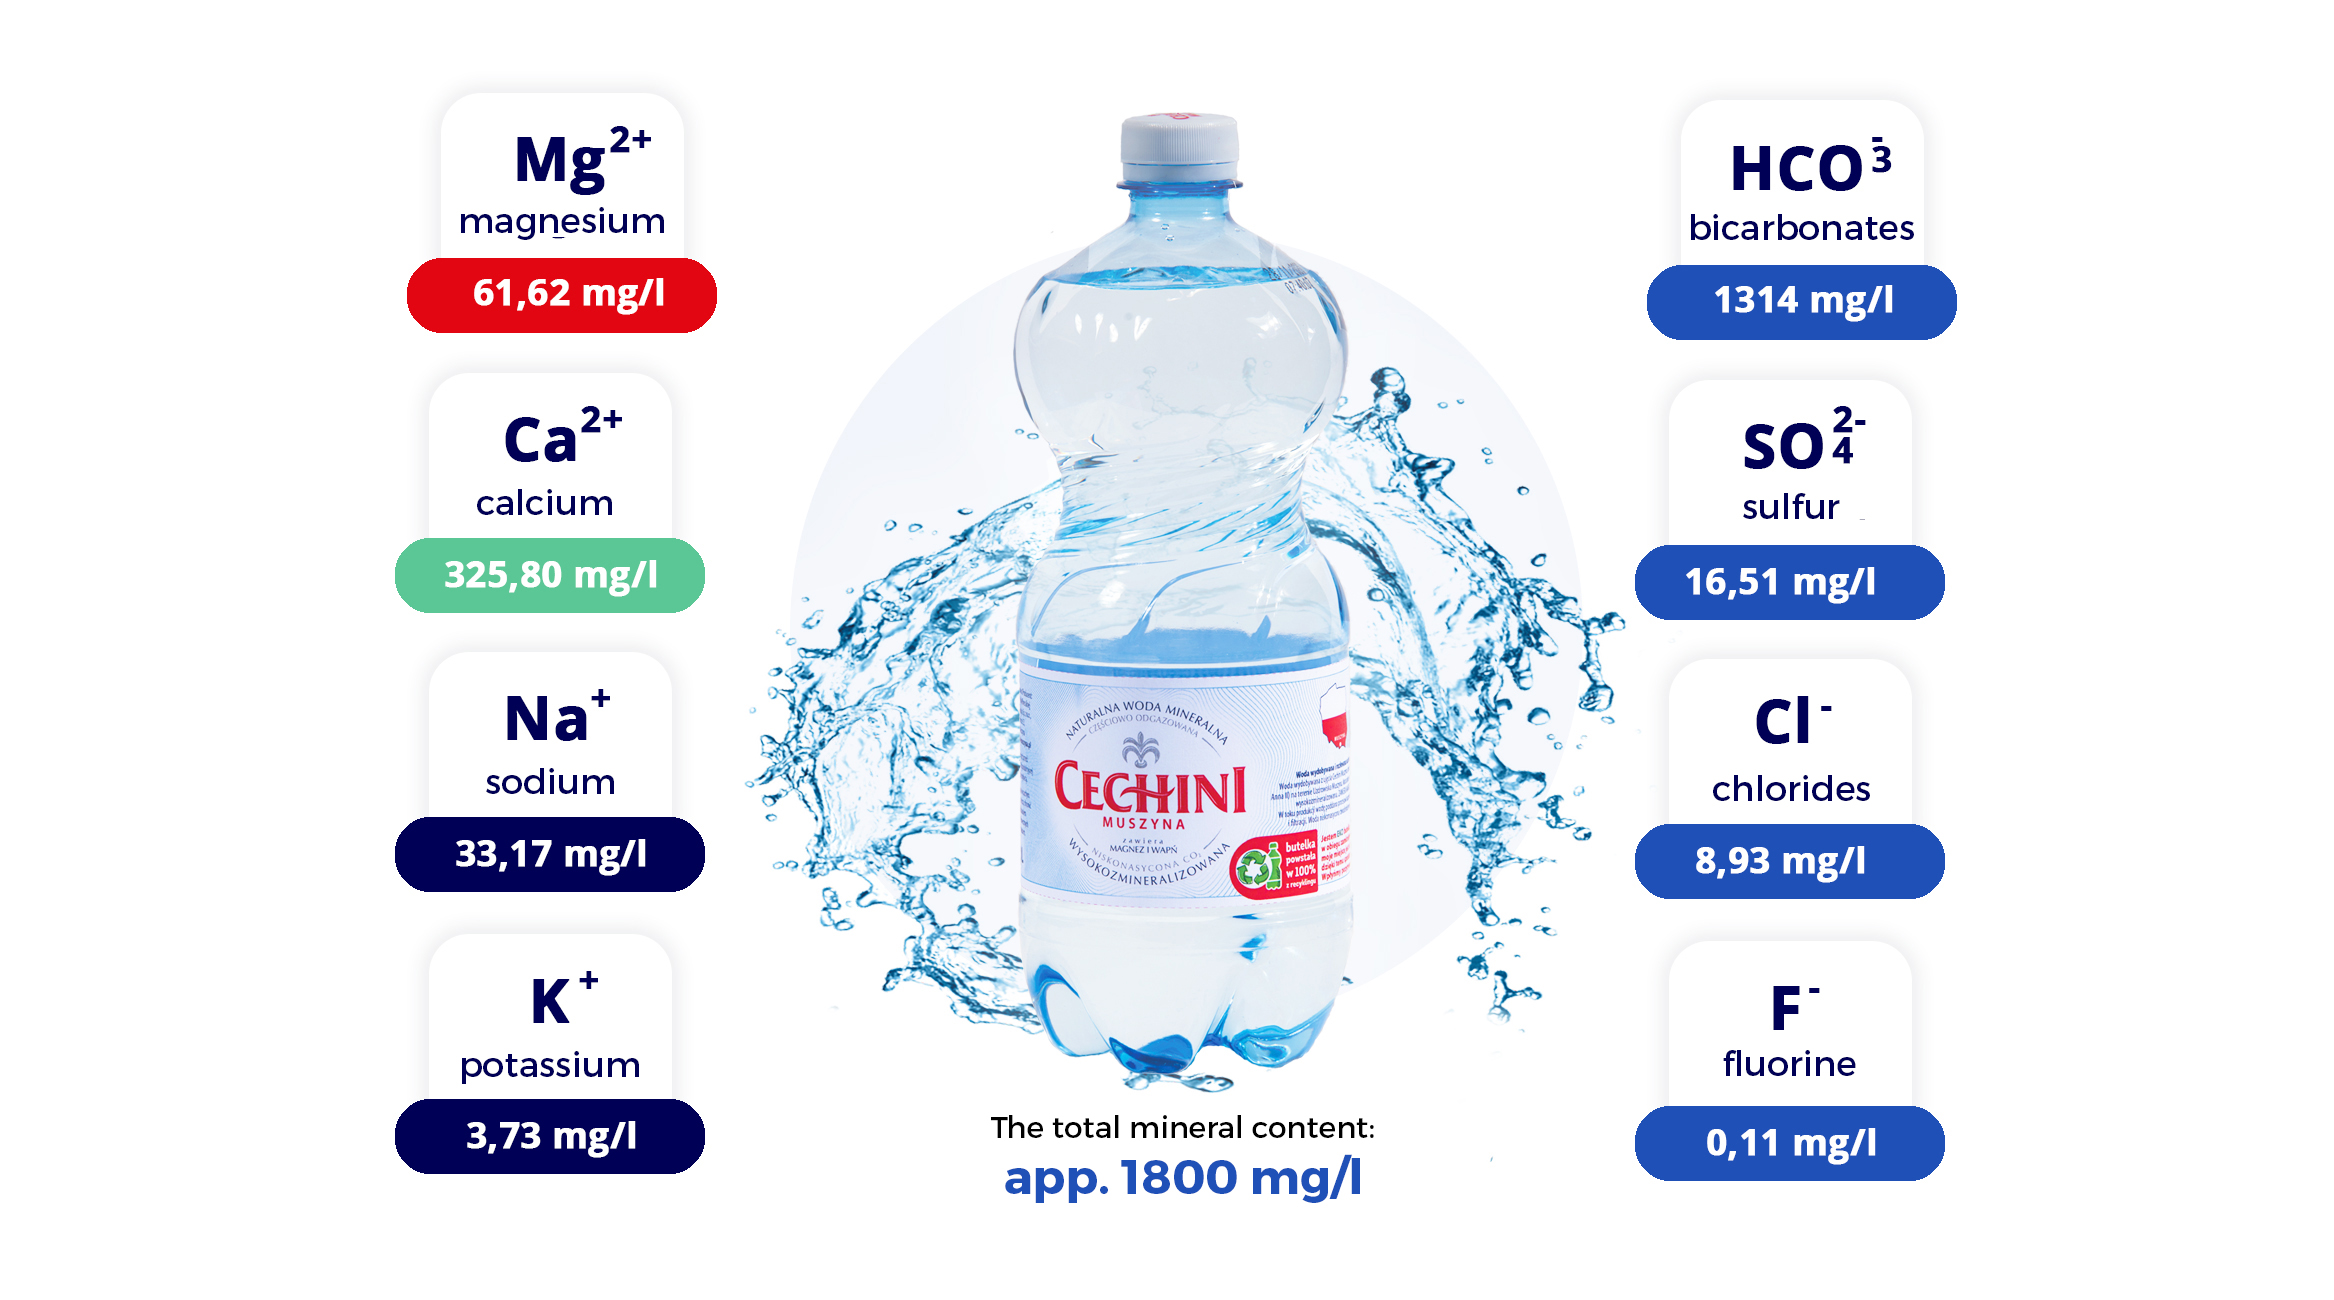 cechini mineral water